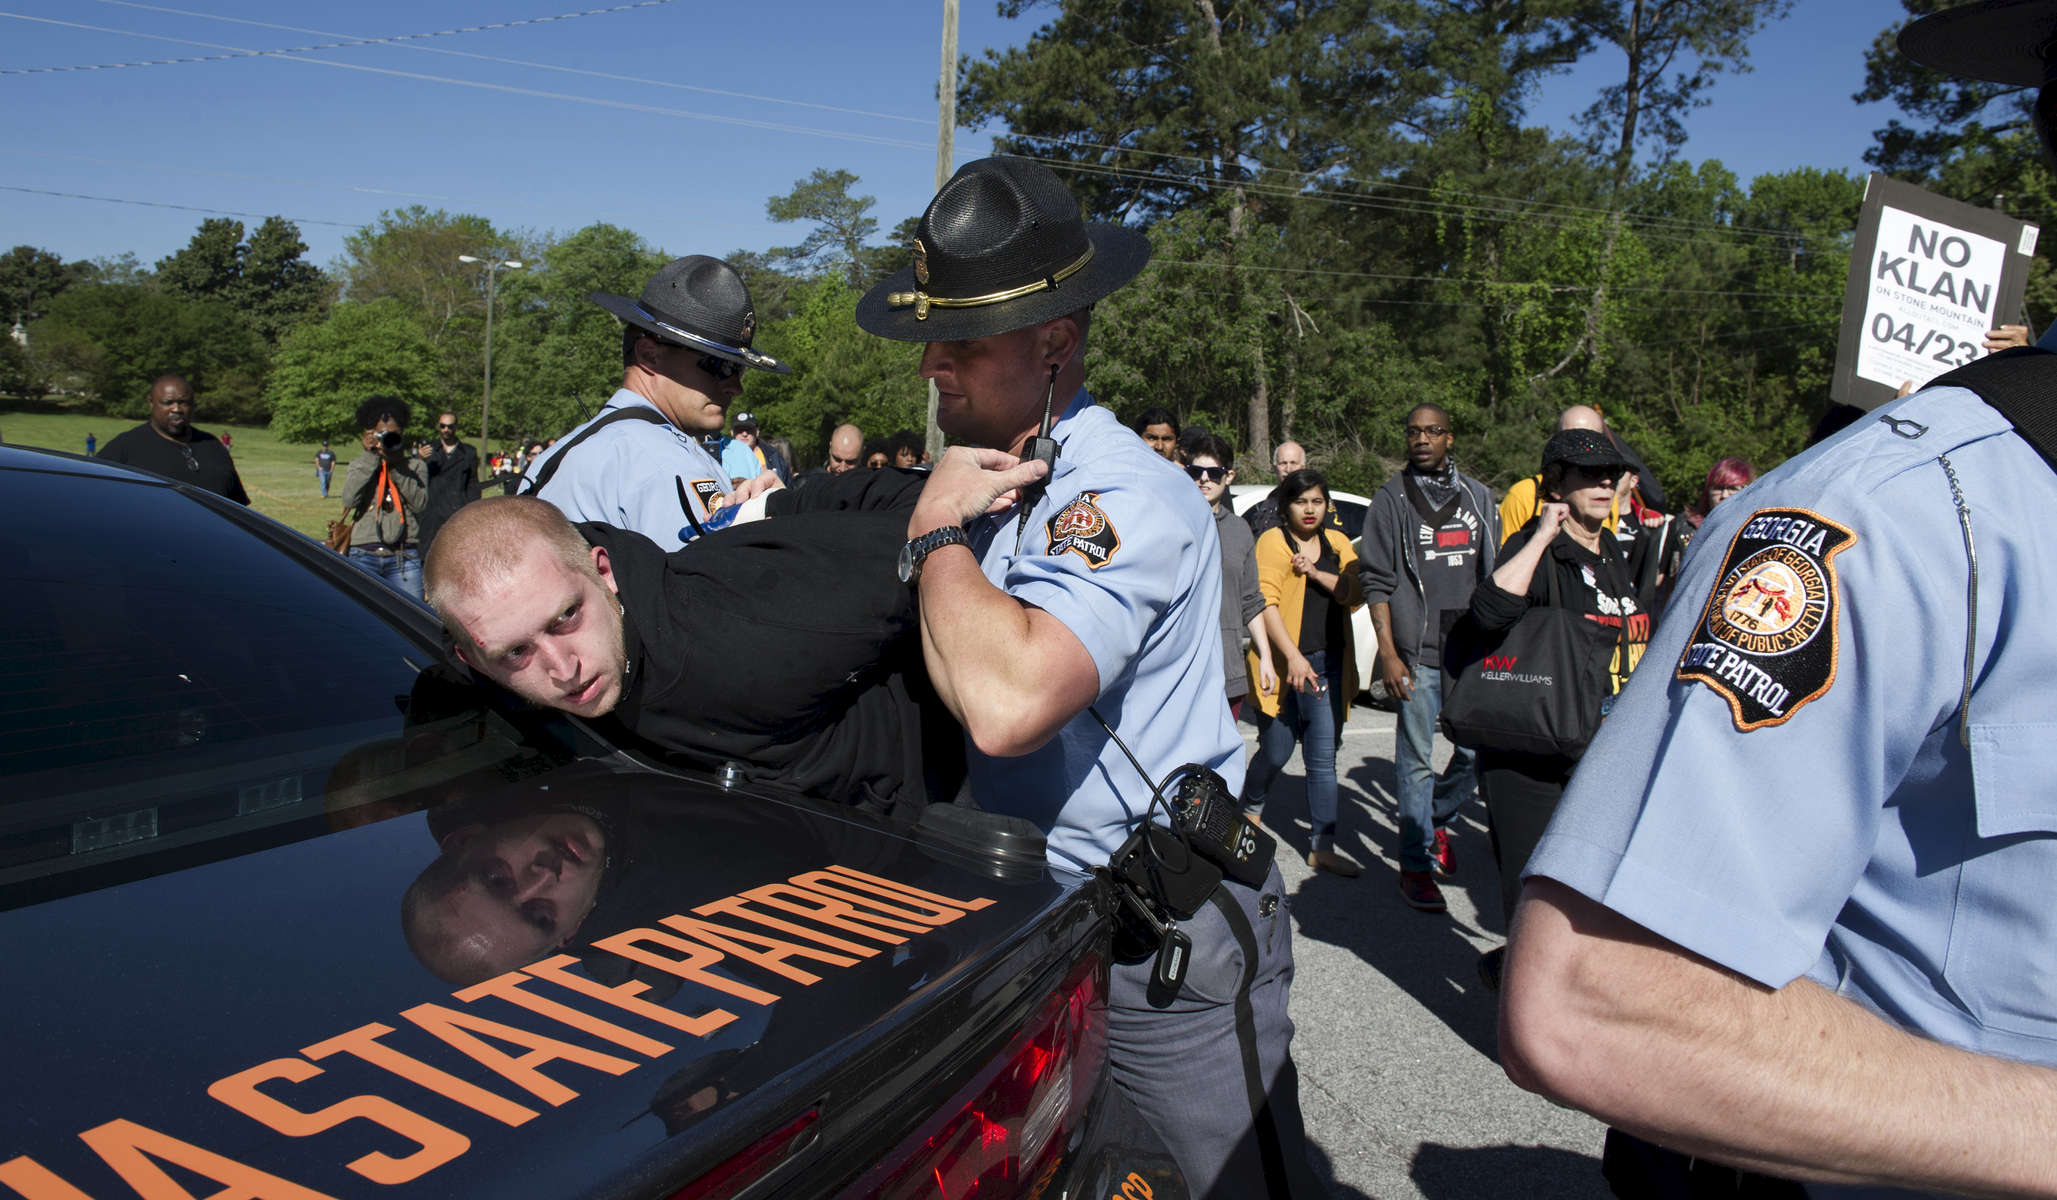 Police arrest members of an anti-Ku Klux Klan protest group known as All Out ATL that mobilized to shut down a KKK rally in the Stone Mountain park. Hundreds of marchers were met by dozens of police and state troopers, many in riot gear. The anti-white supremacist  group hoped to thwart  the permitted rally, which was only sparsely attended.